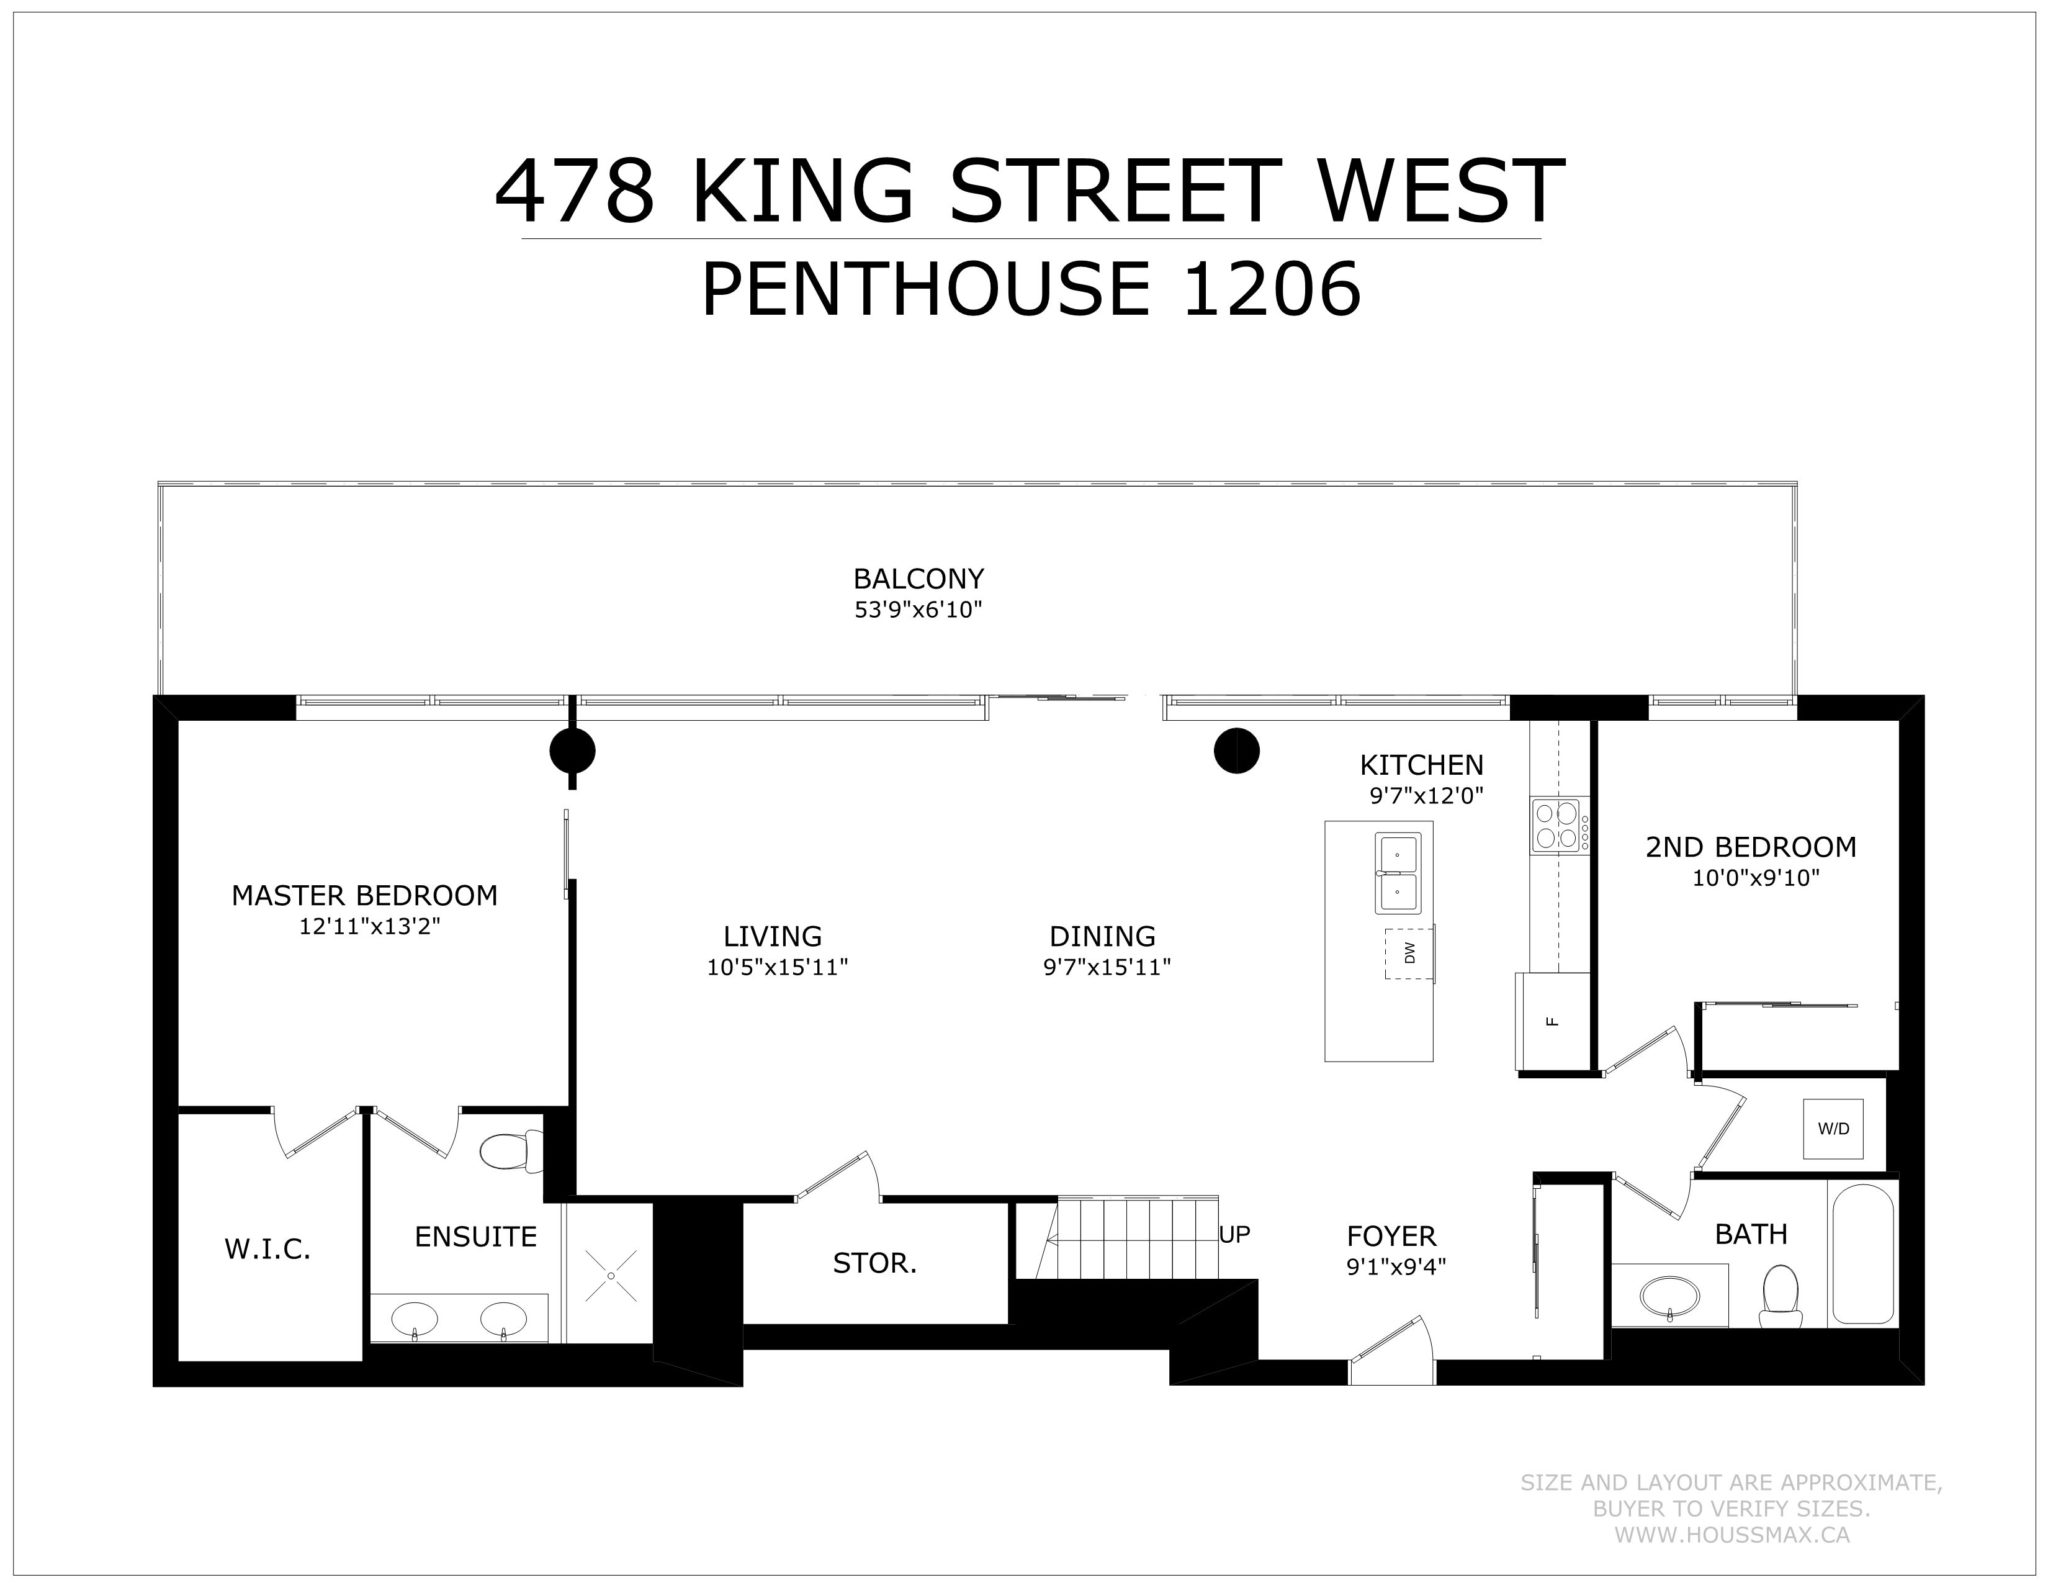 Floor Plans (1st Floor) for Victory Lofts Penthouse Suite in 478 King St W Toronto.